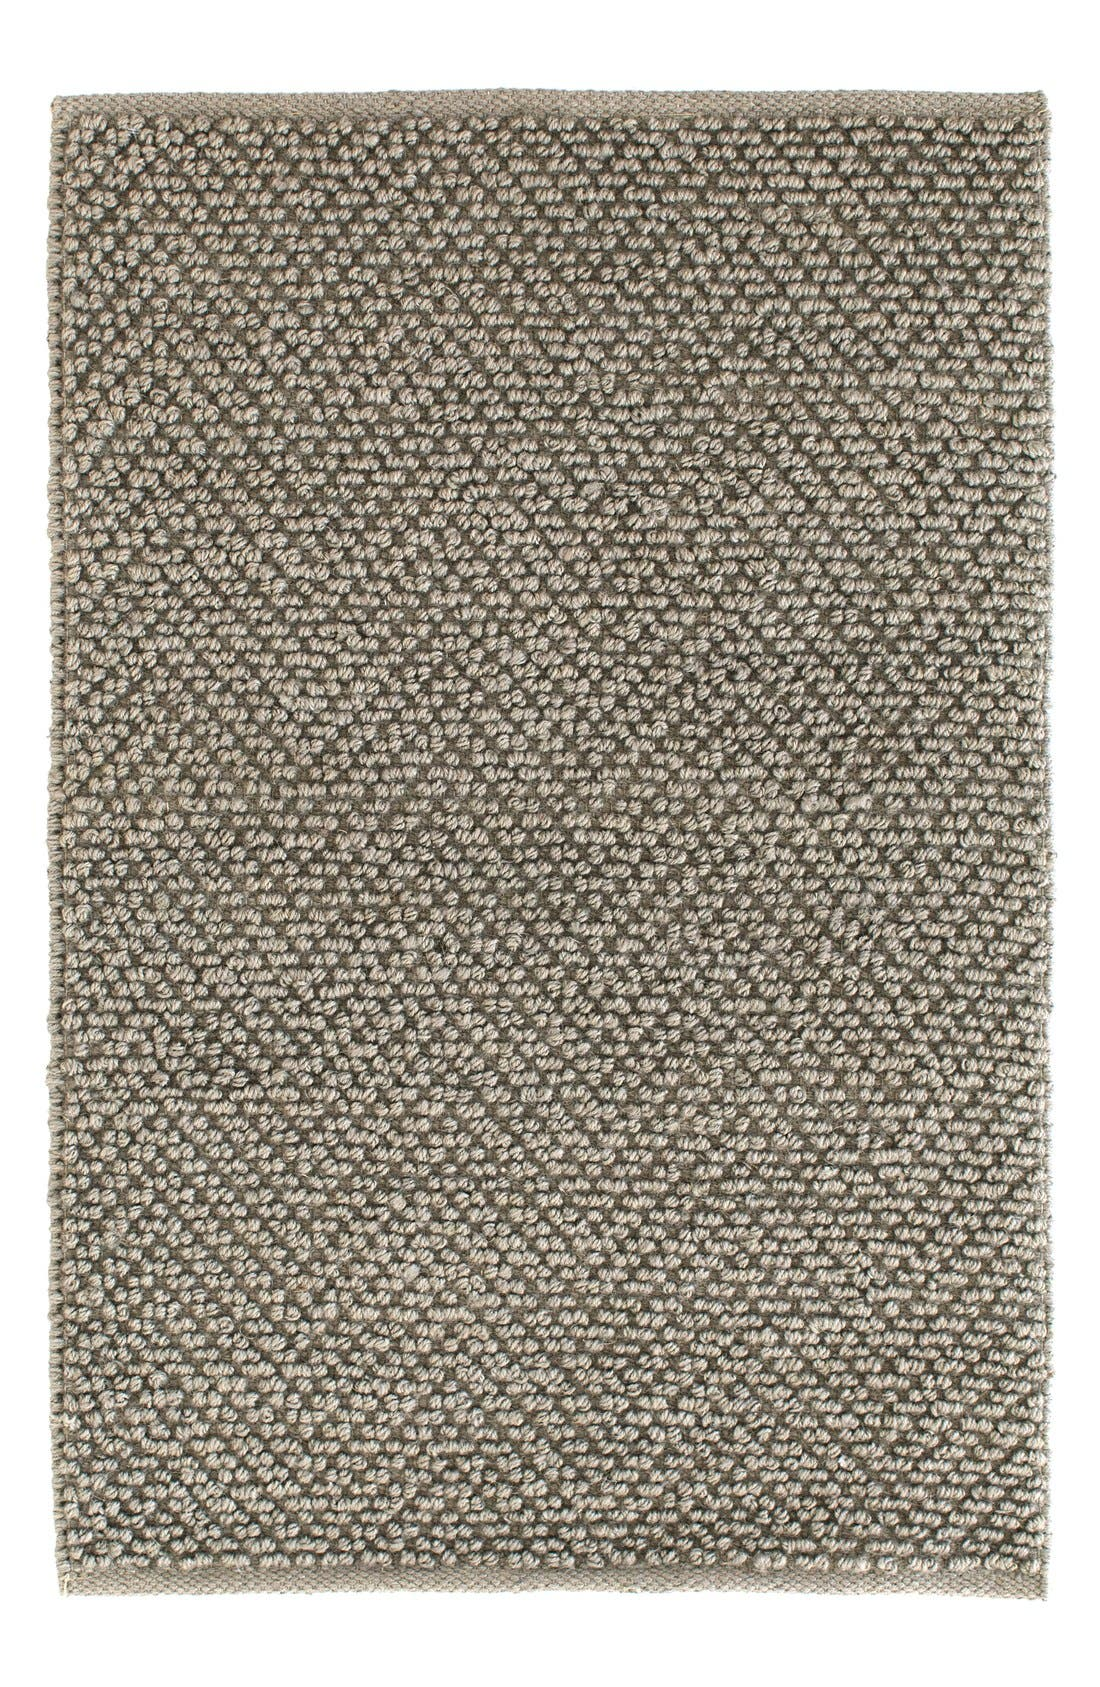 Woven Jute & Cotton Rug,                             Main thumbnail 1, color,                             SILVER OAK